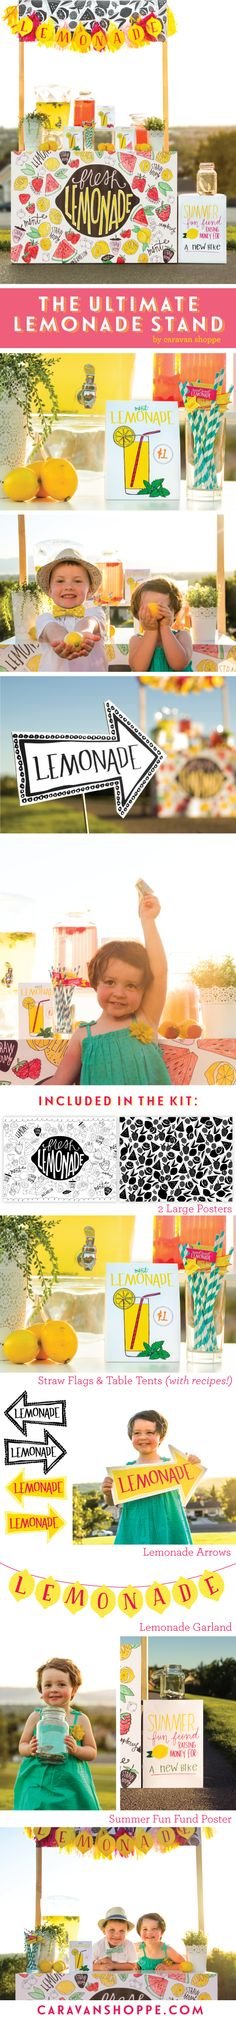 Lemonade Stand | The Ultimate Lemonade Stand printable download from Caravan Shoppe! Think of the possibilities...